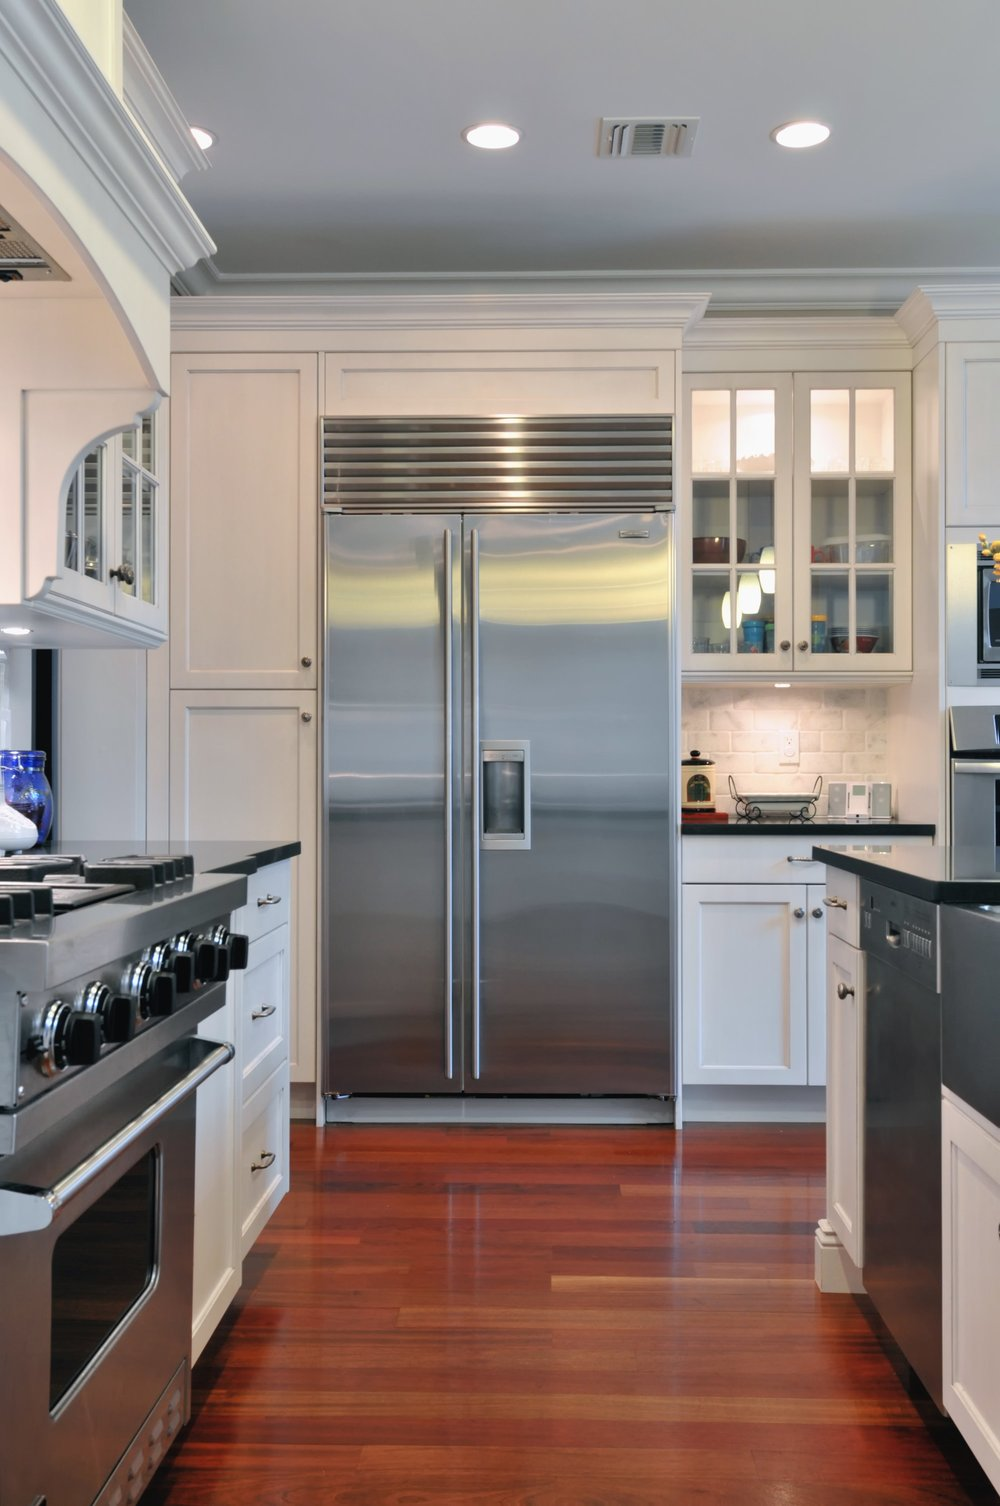 Transitional style kitchen with stainless steel oven